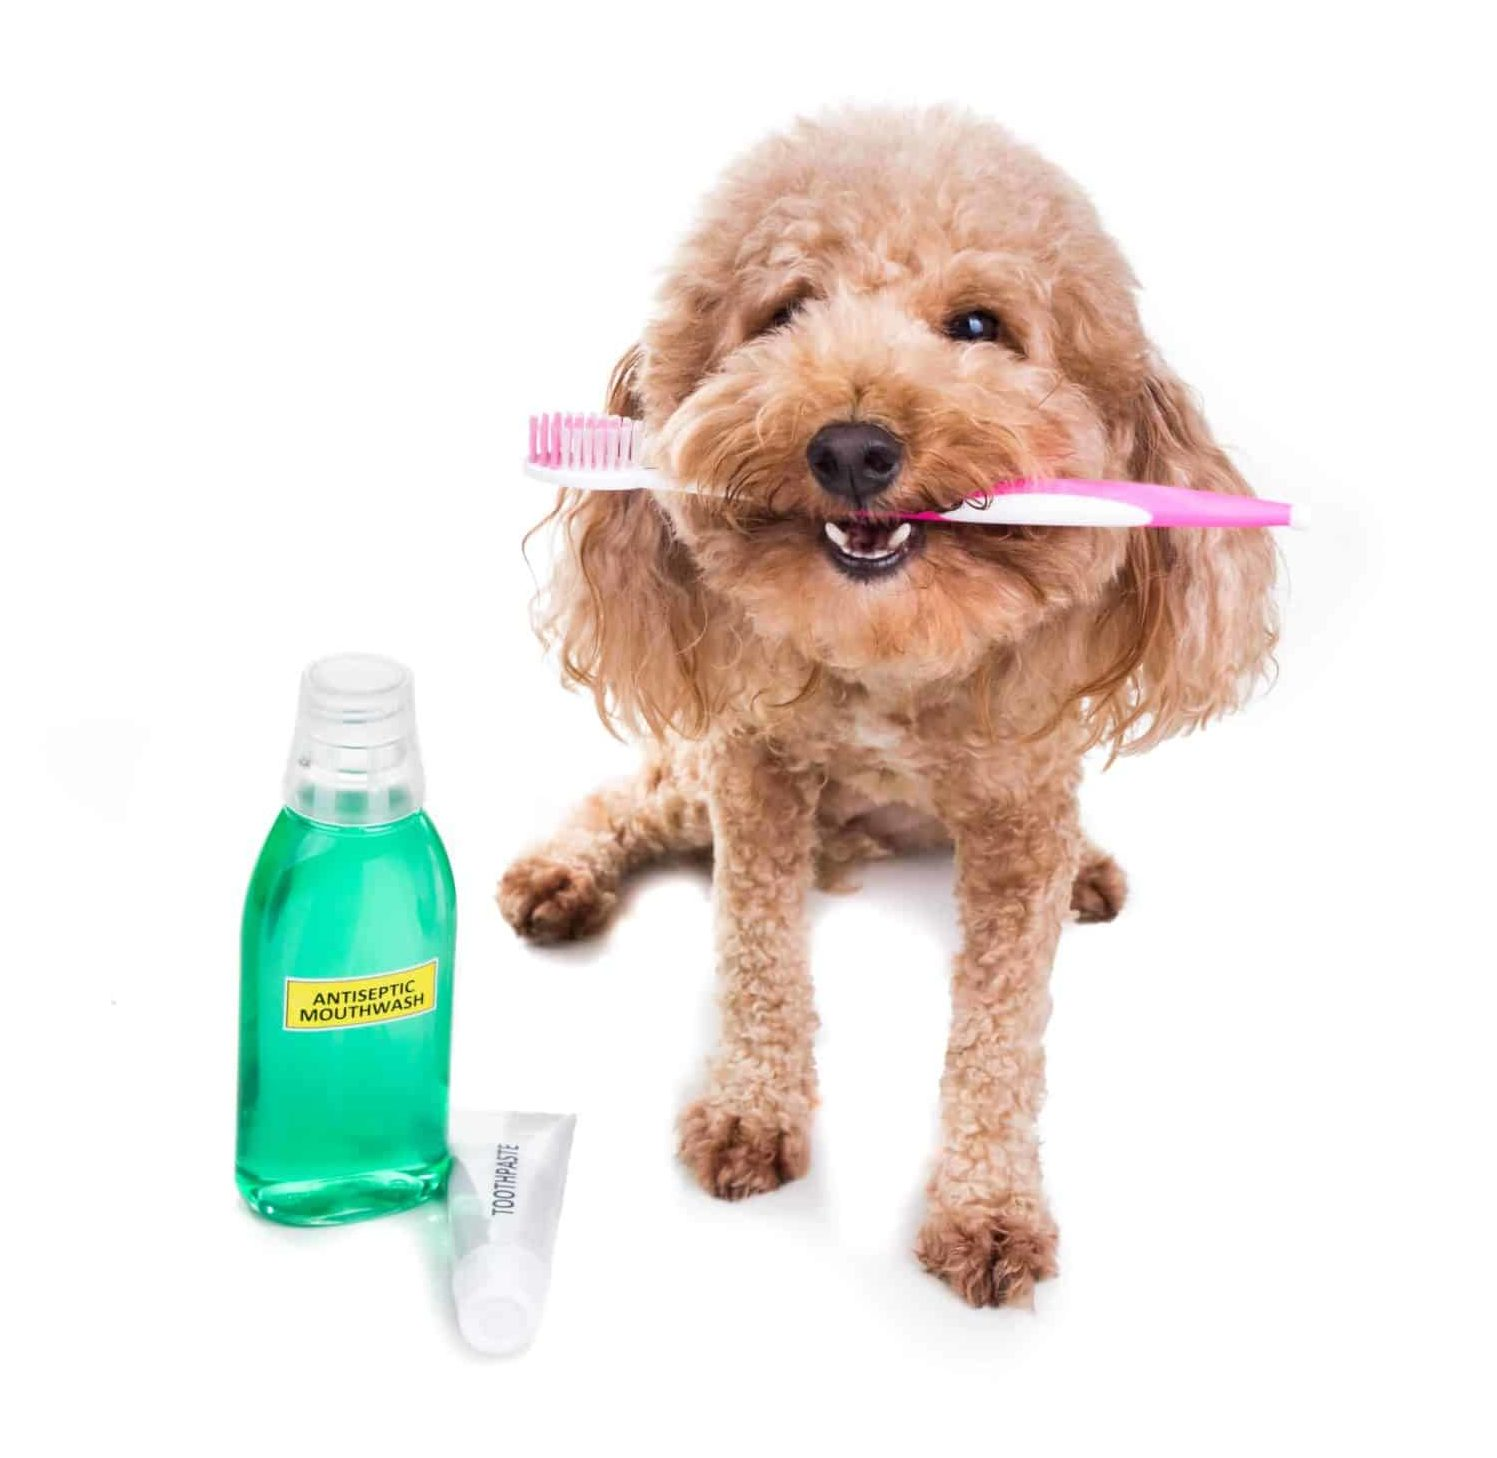 Photo illustration of a poodle with toothbrush, toothpaste, and dog mouthwash.